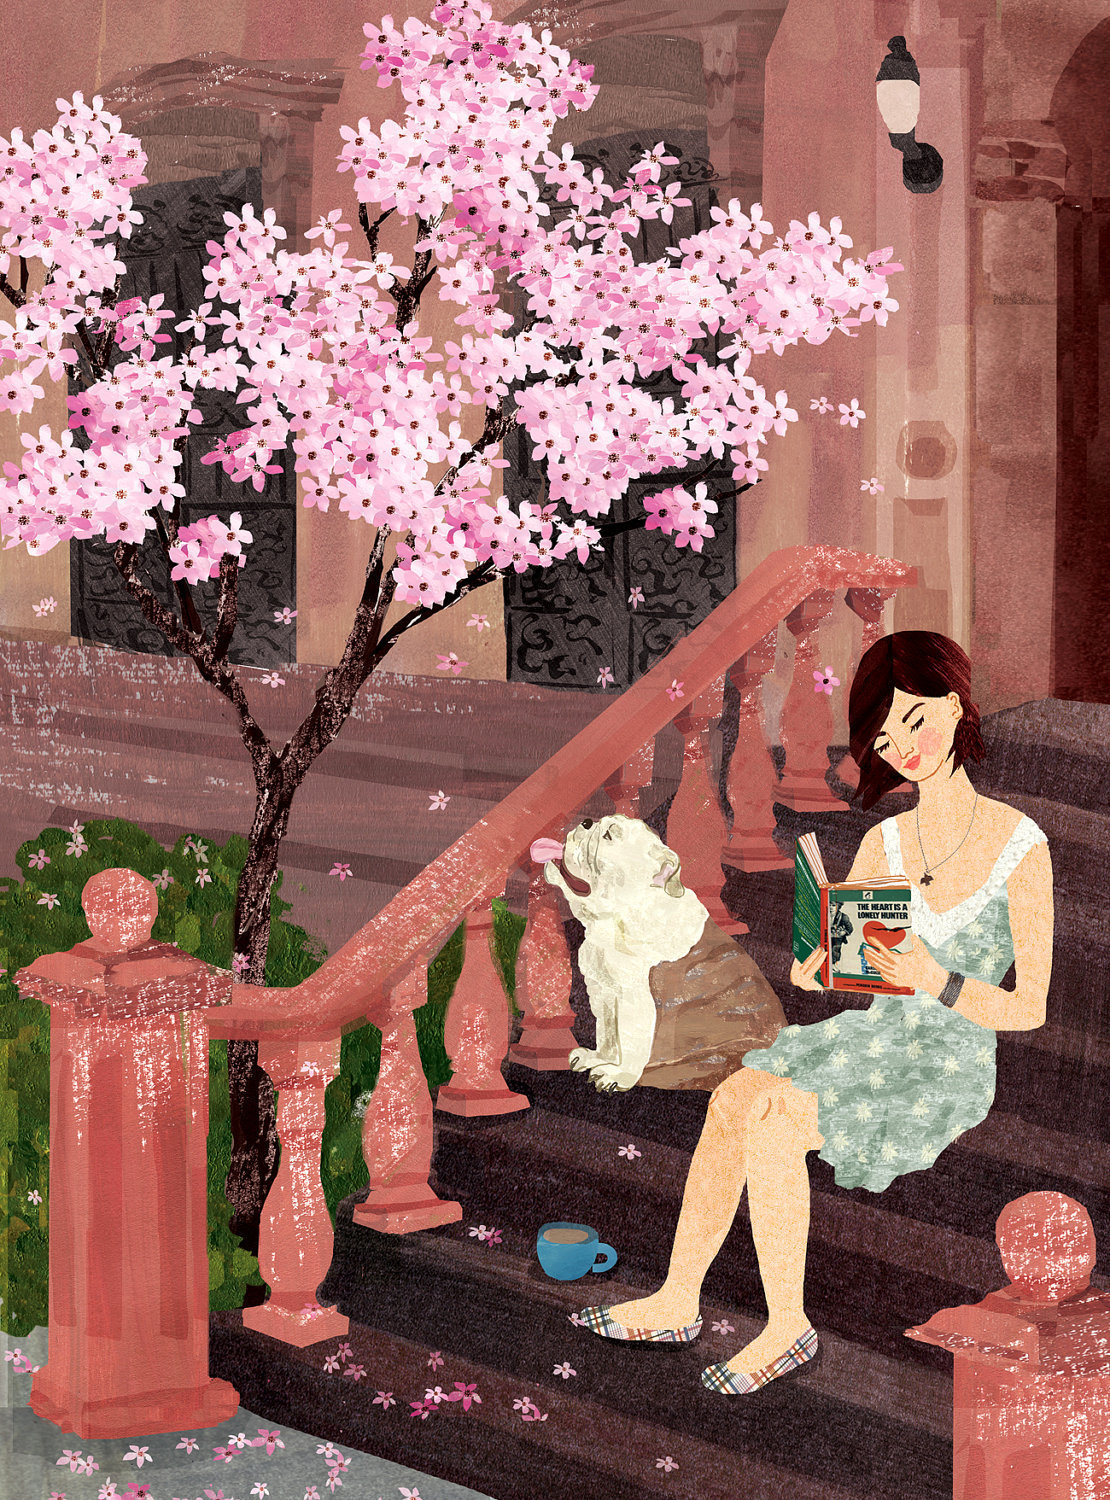 """Brooklyn,"" Illustration of a girl reading The Heart is a Lonely Hunter. Aimée Sicuro. Sicuro received a BFA from Columbus College of Art and Design. Currently, she lives and works as a free-lance illustrator in Brooklyn where she rediscovers life everyday on the vibrant streets of New York."